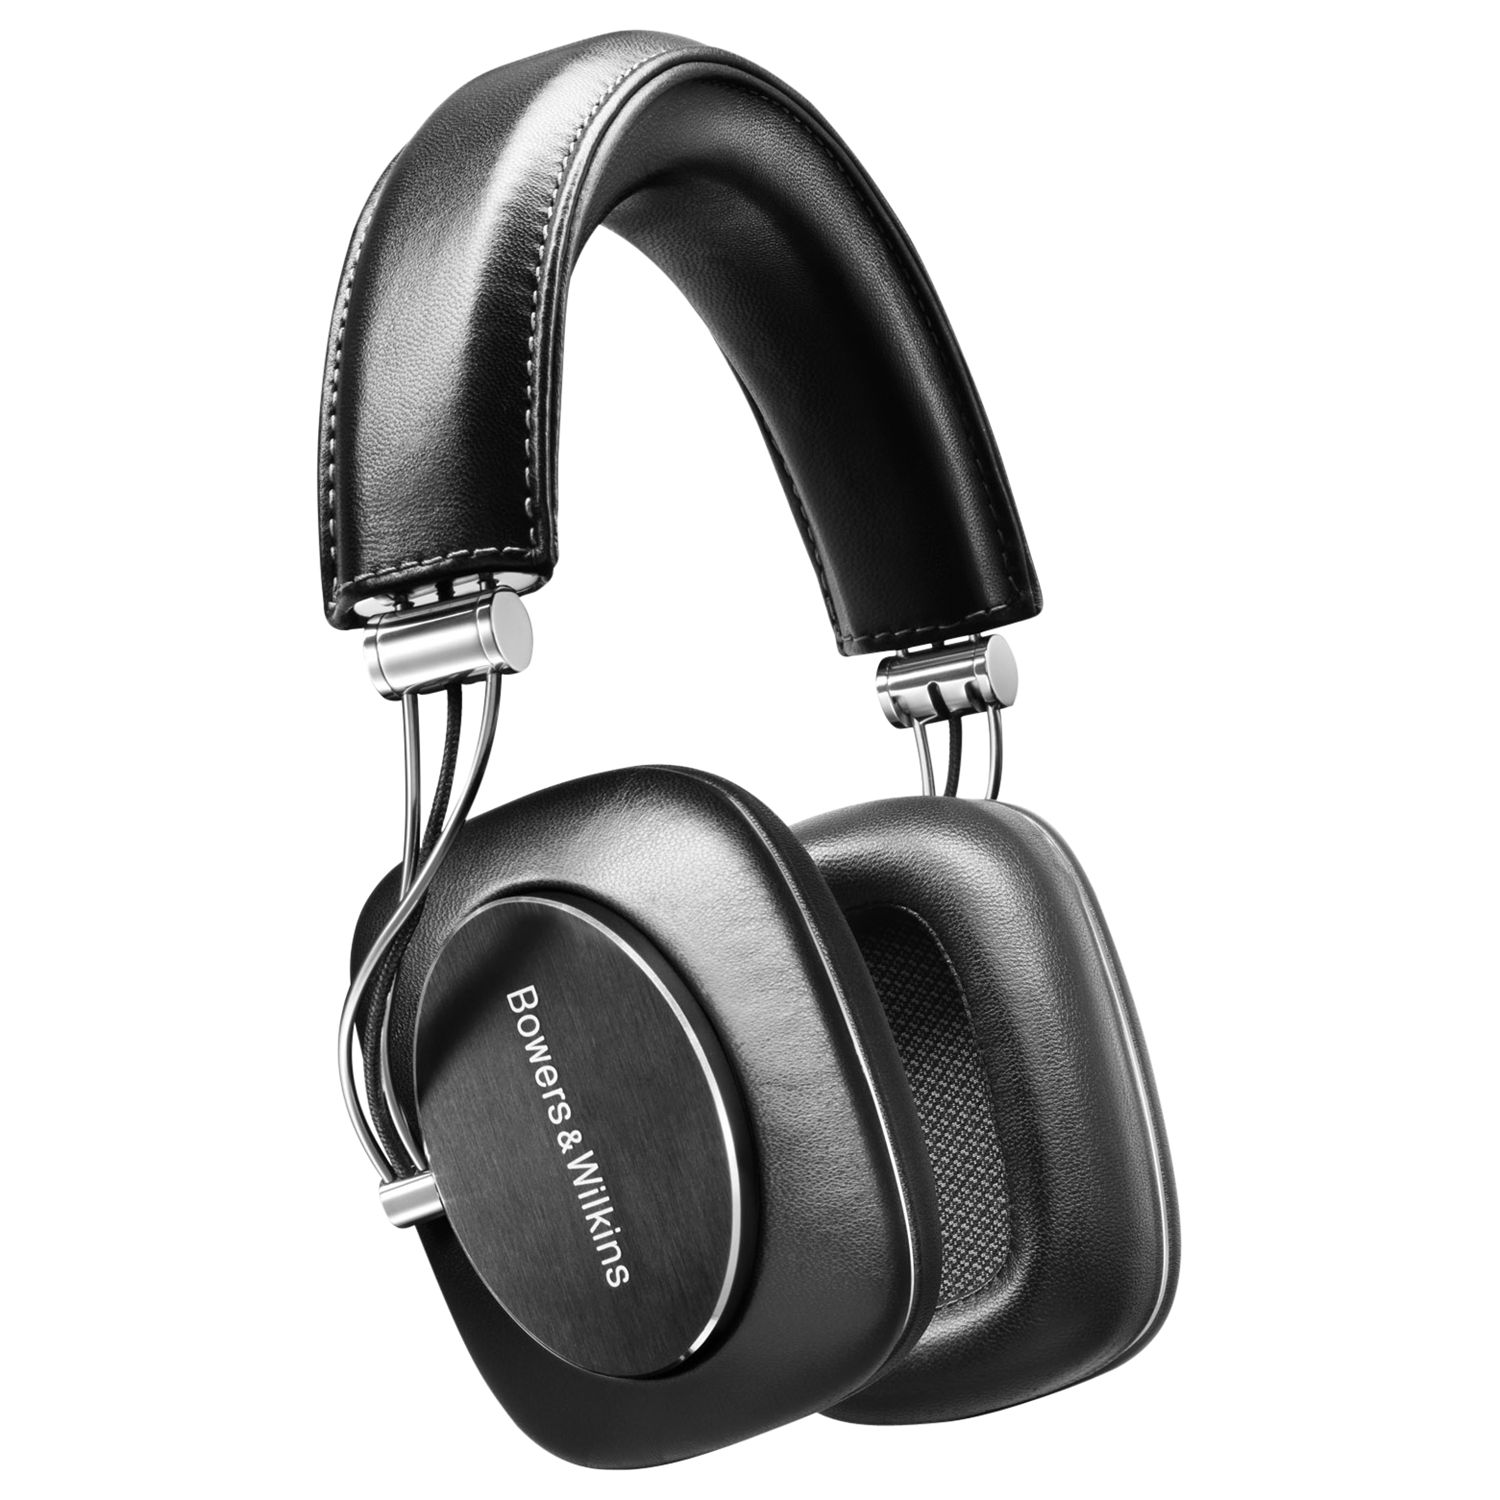 Bowers & Wilkins Bowers & Wilkins P7 Over Ear Headphones with Mic/Remote